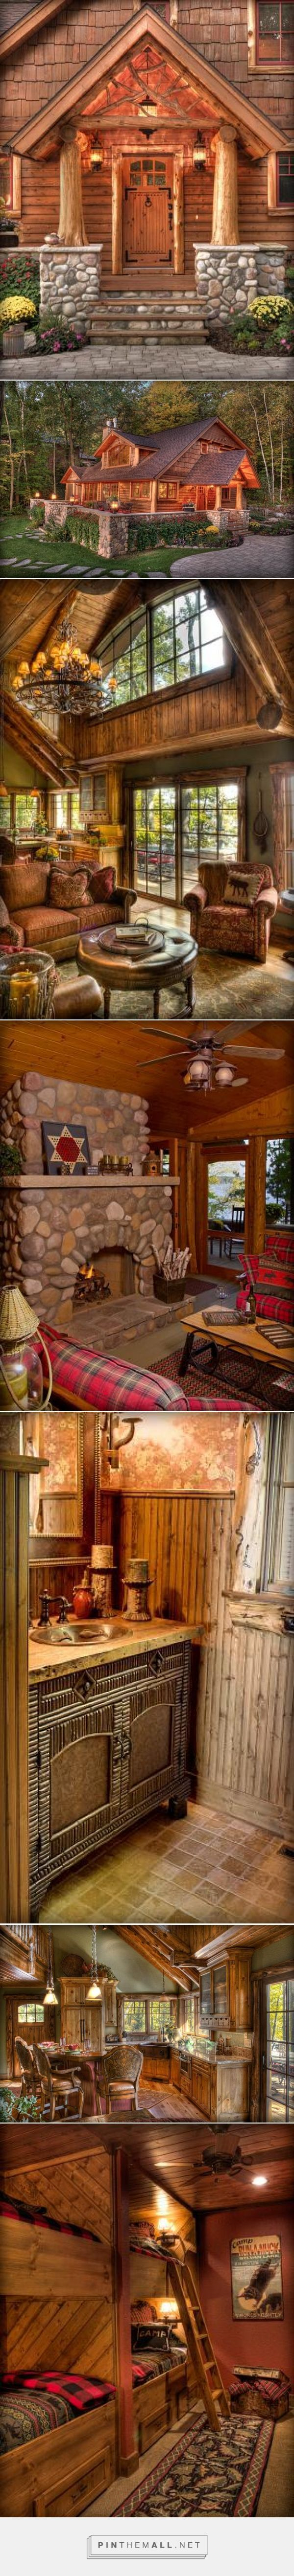 This house is ticking off all the boxes for me in what I want in a rustic cabin aka log home.